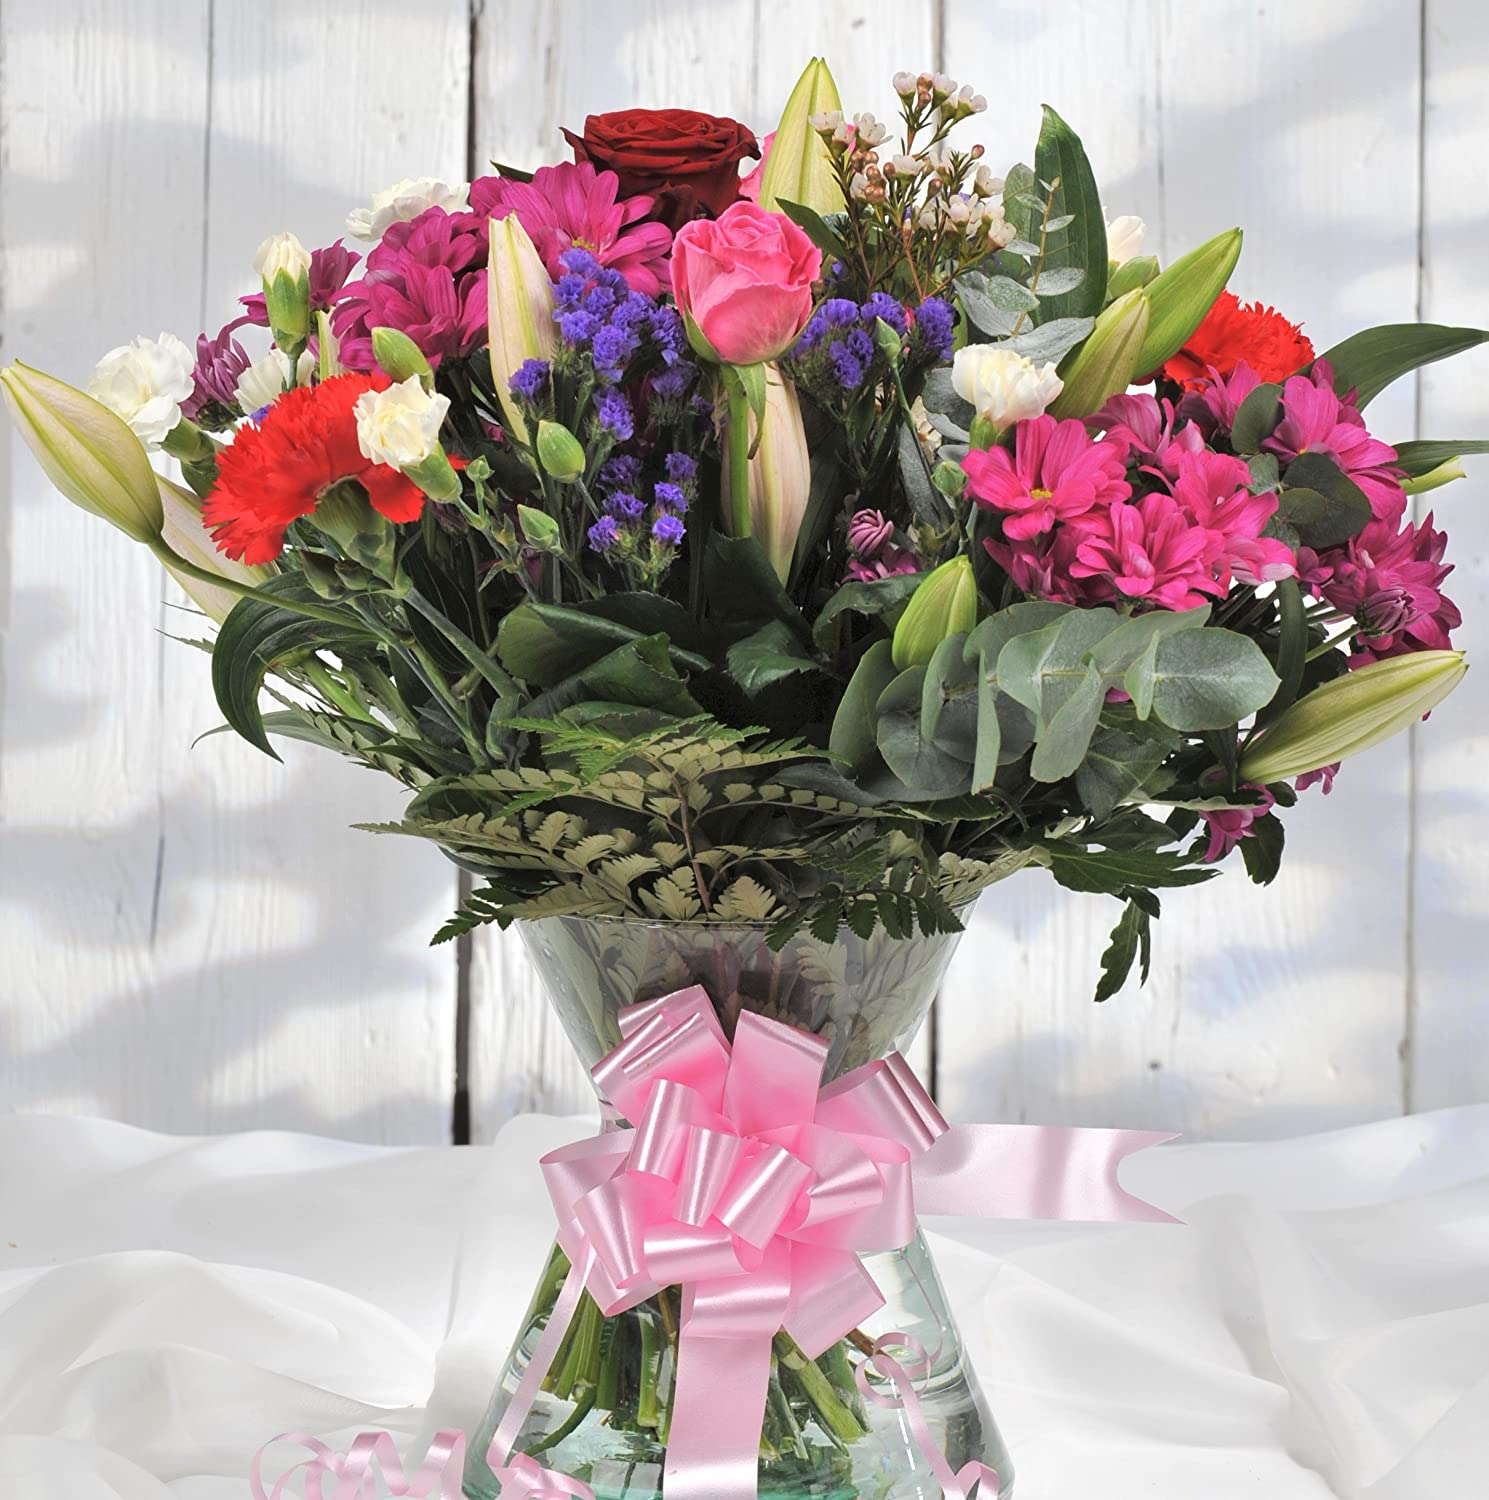 Homeland florists large mixed bouquet with a single luxury naomi homeland florists large mixed bouquet with a single luxury naomi velvet rose at its heart red amazon garden outdoors izmirmasajfo